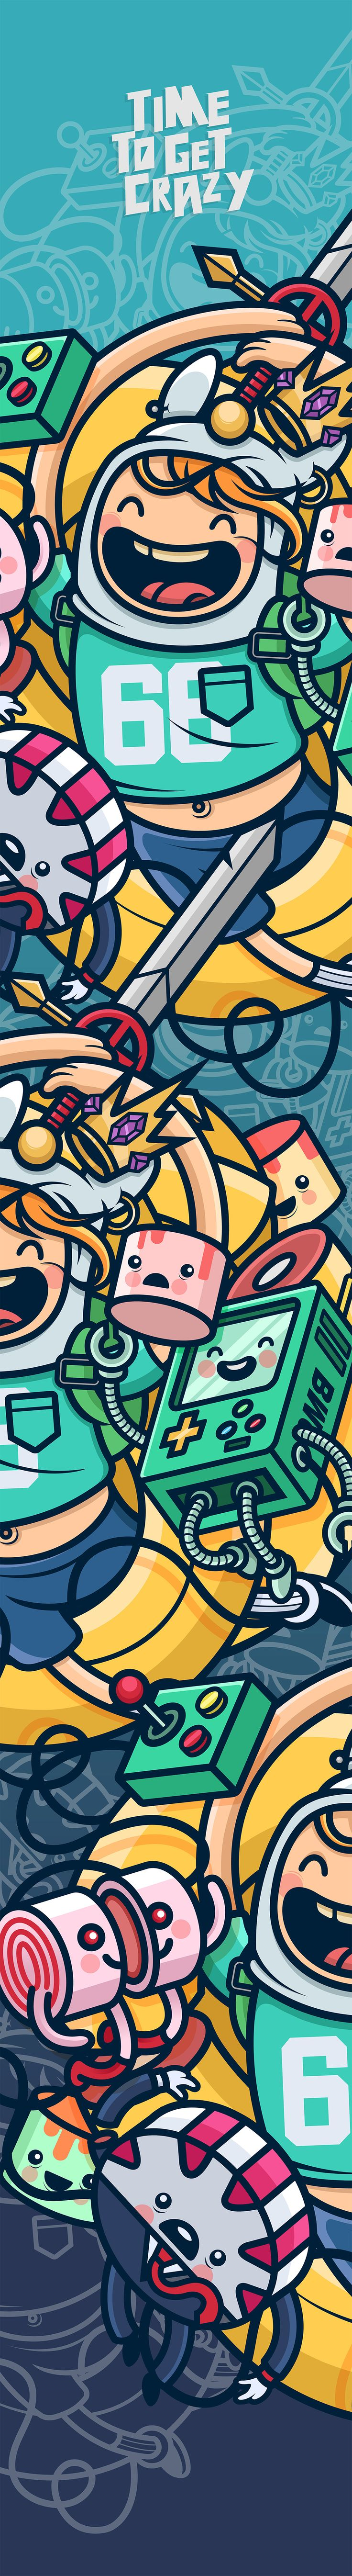 Time to get crazy - Adventure Time on Behance